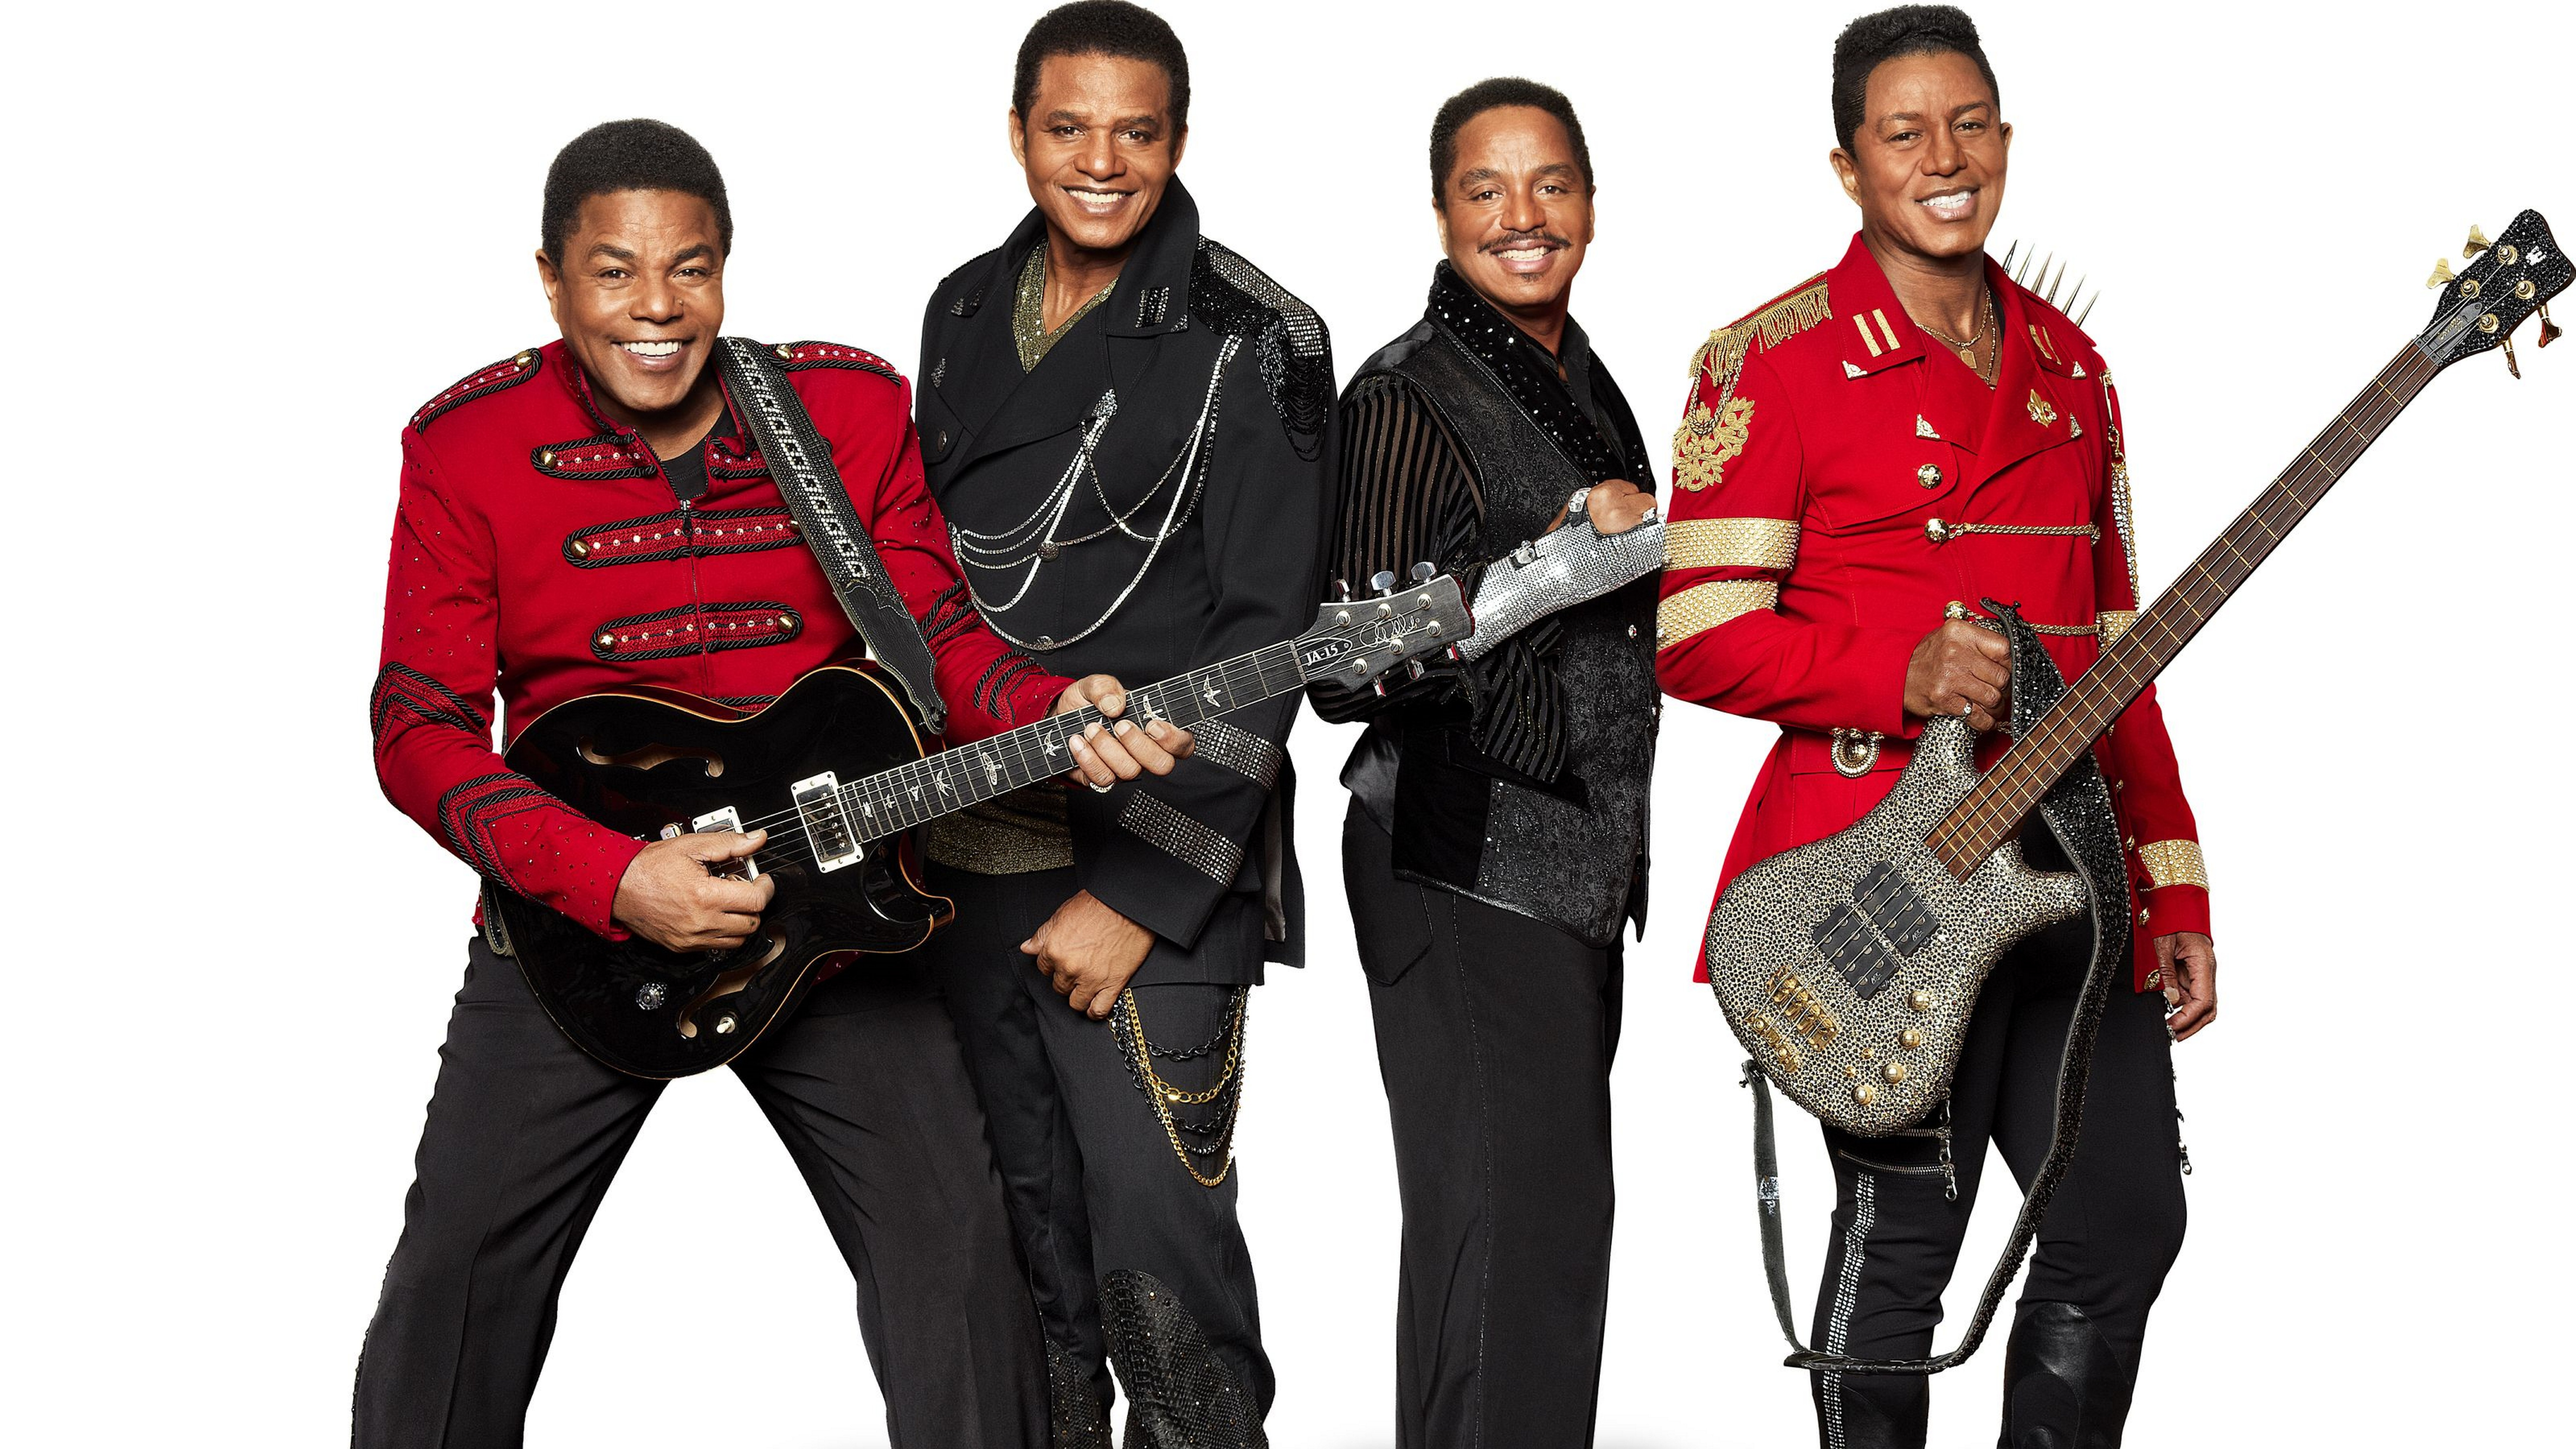 Even without their brother Michael, the Jacksons still put on a high-energy show Saturday at UB Center for the Arts.